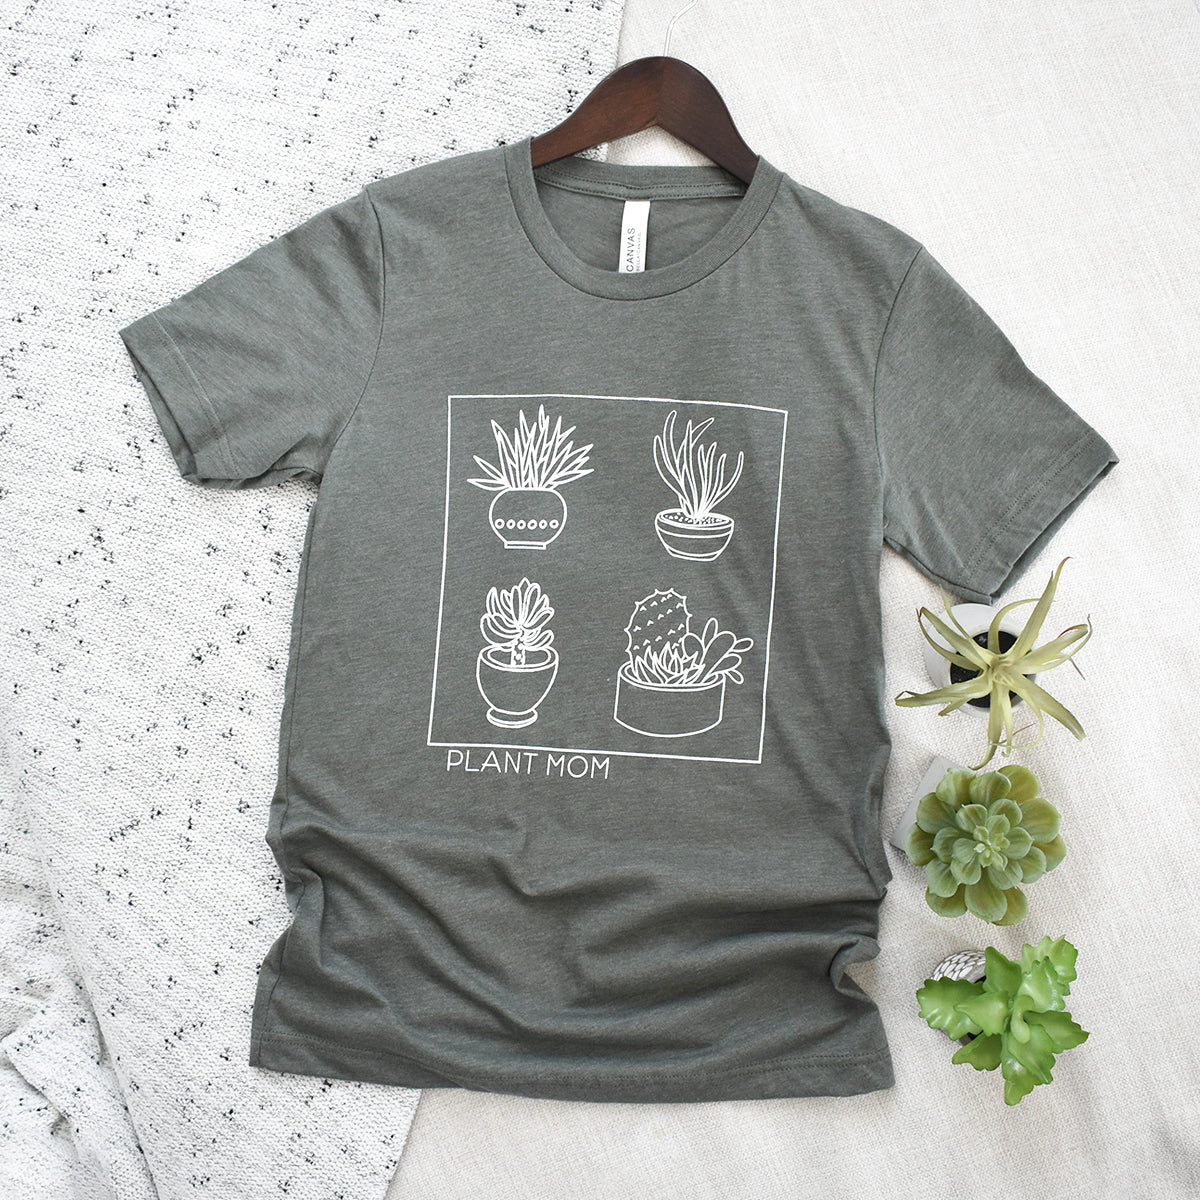 Download plant mom box unisex tee - Piper and Ivy